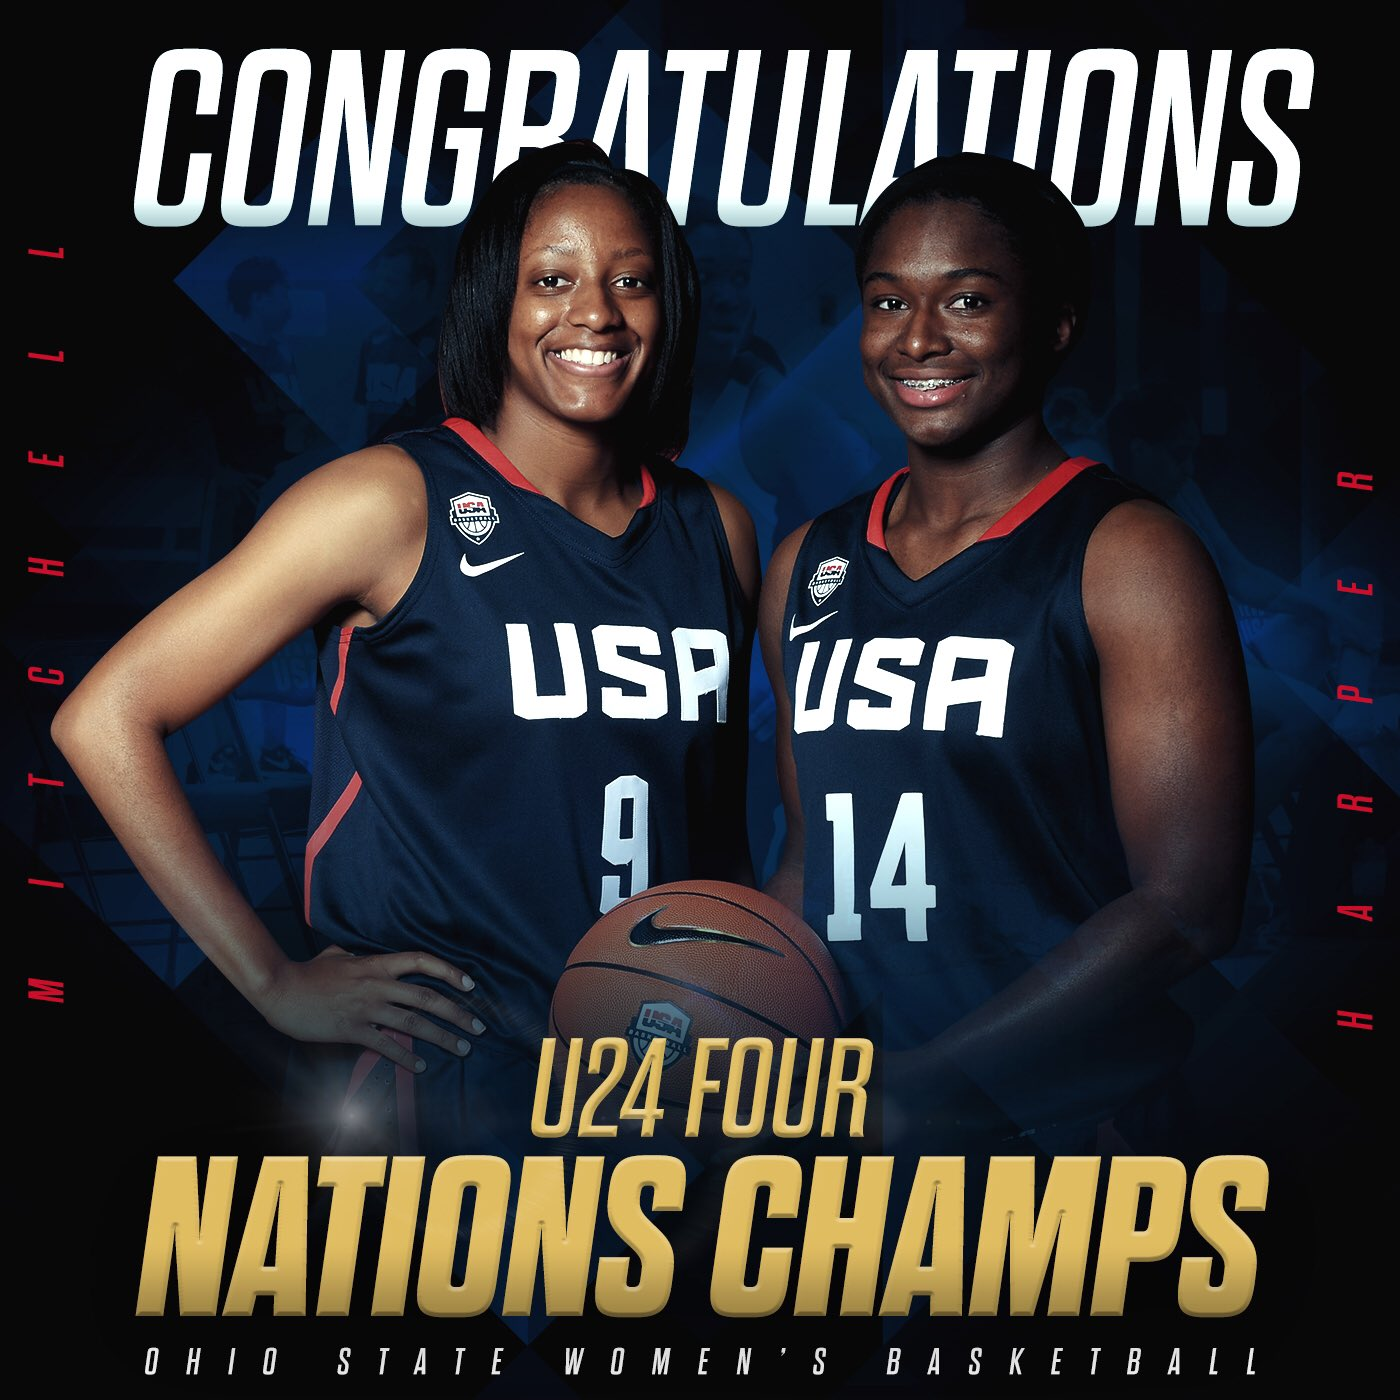 Ohiostatebuckeyes com the ohio state university official athletic - Congratulations Nae_2smoove And Kelz_hoop Safe Travels Back To The States